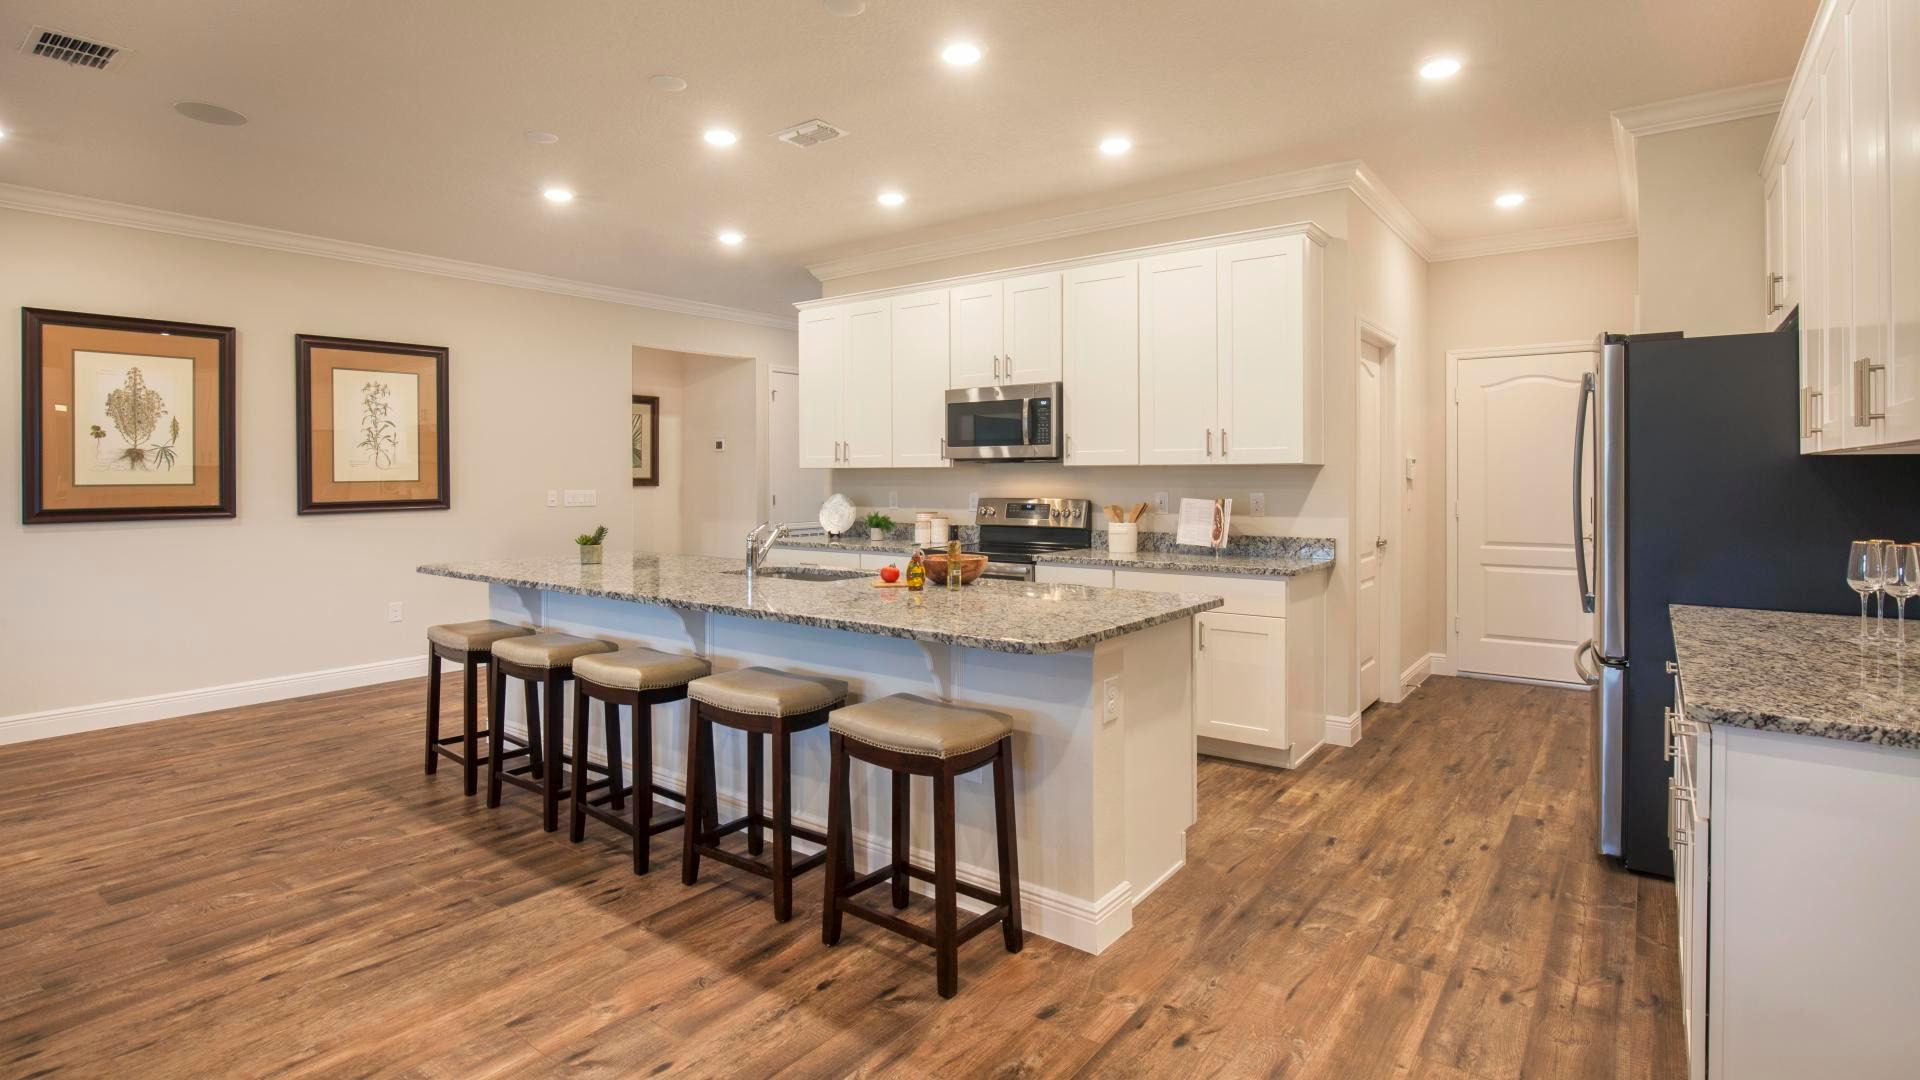 Kitchen featured in the Wilmington By Maronda Homes in Daytona Beach, FL